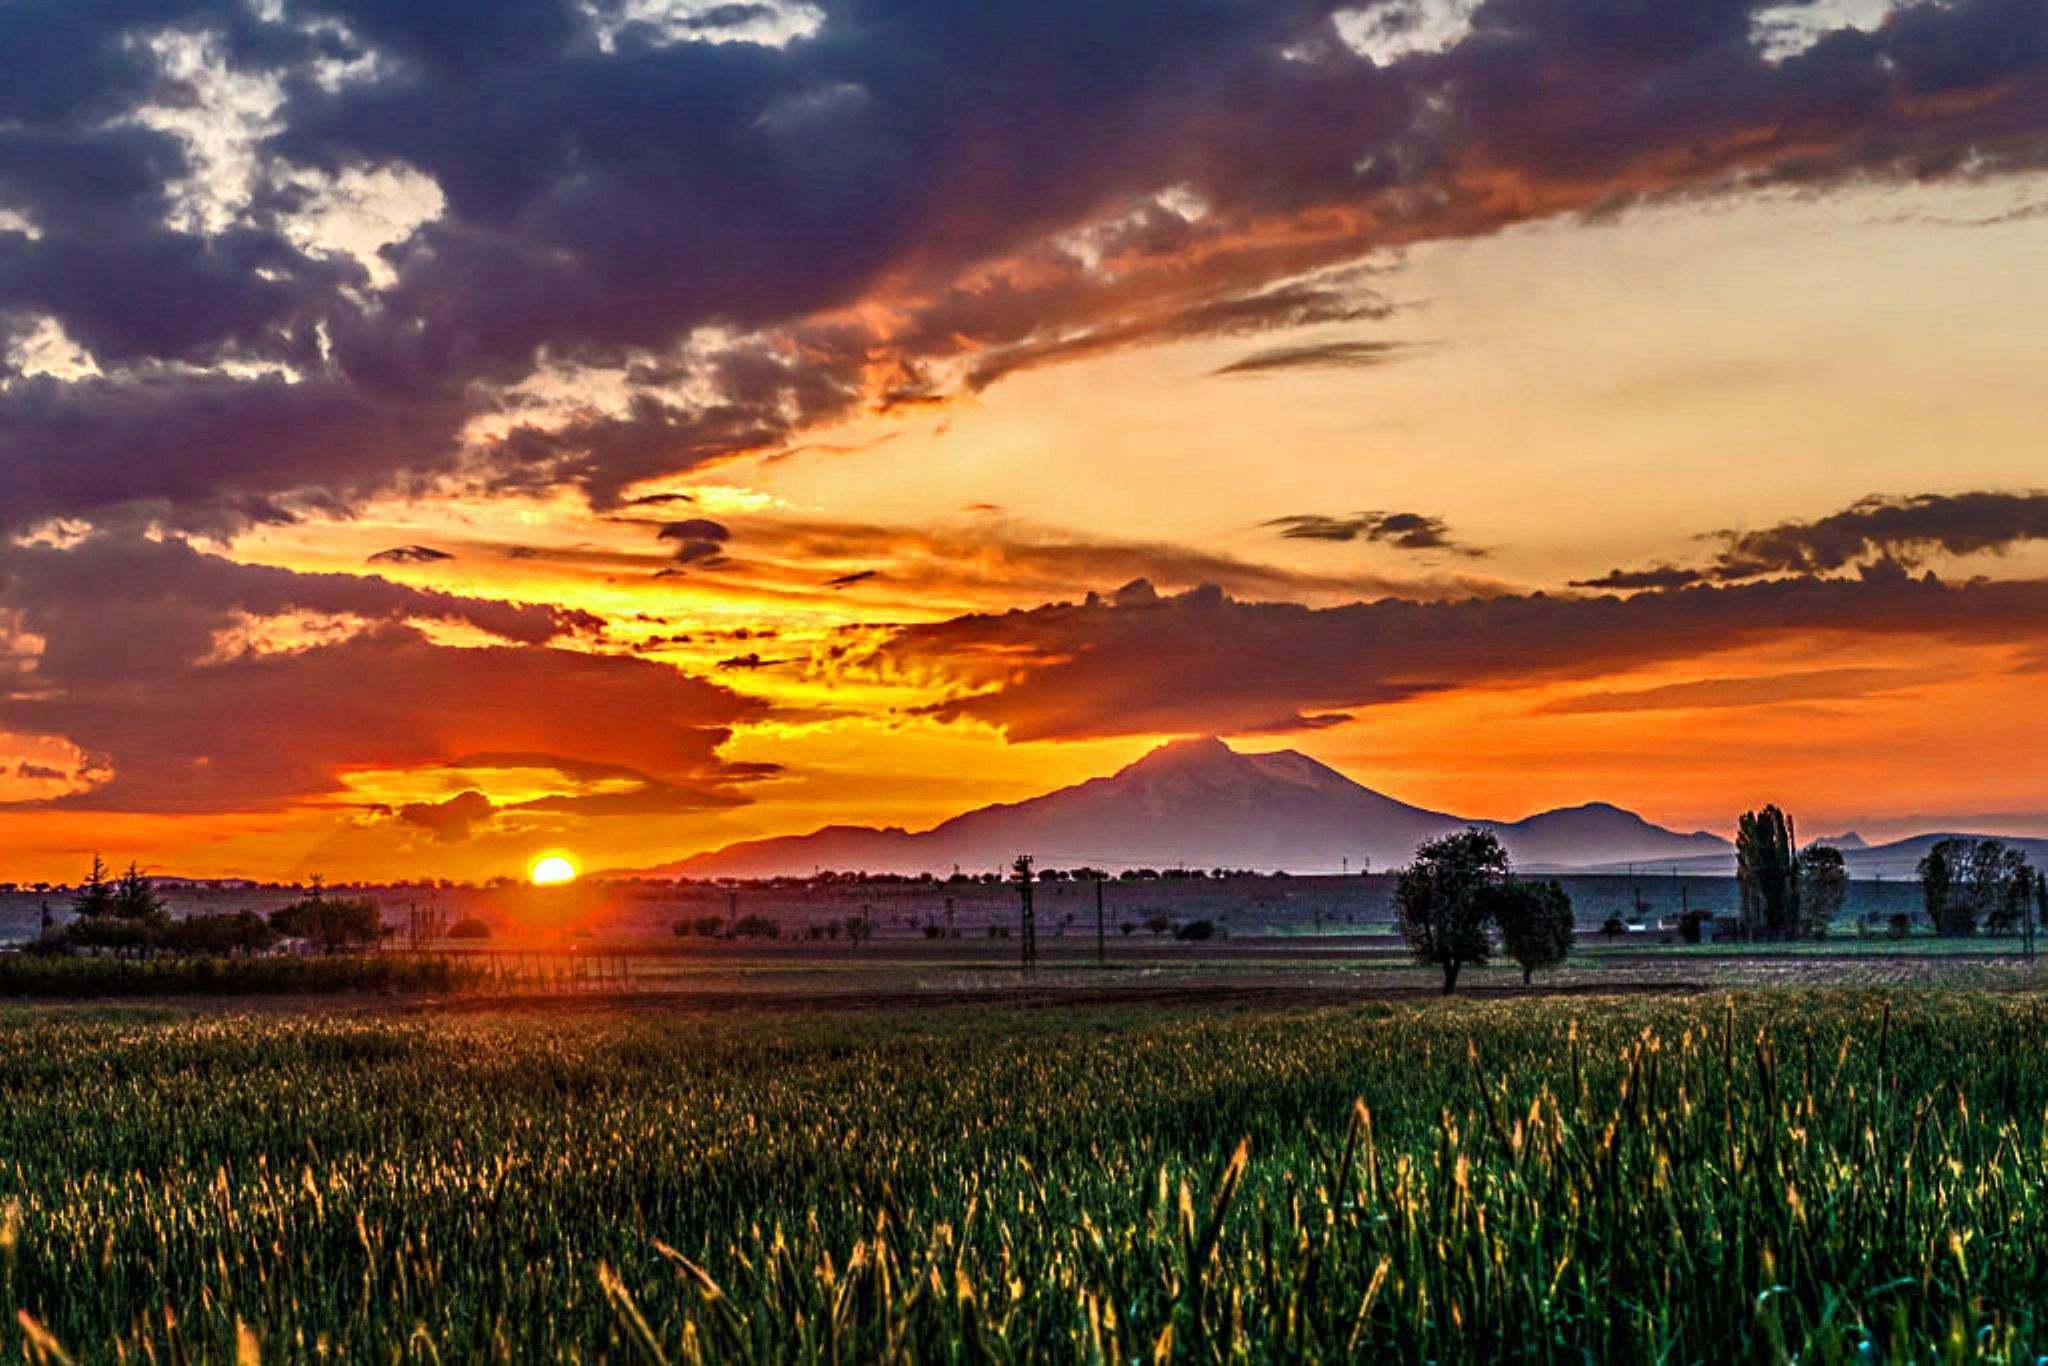 Erciyes mountain by mustafaozdemirphotography